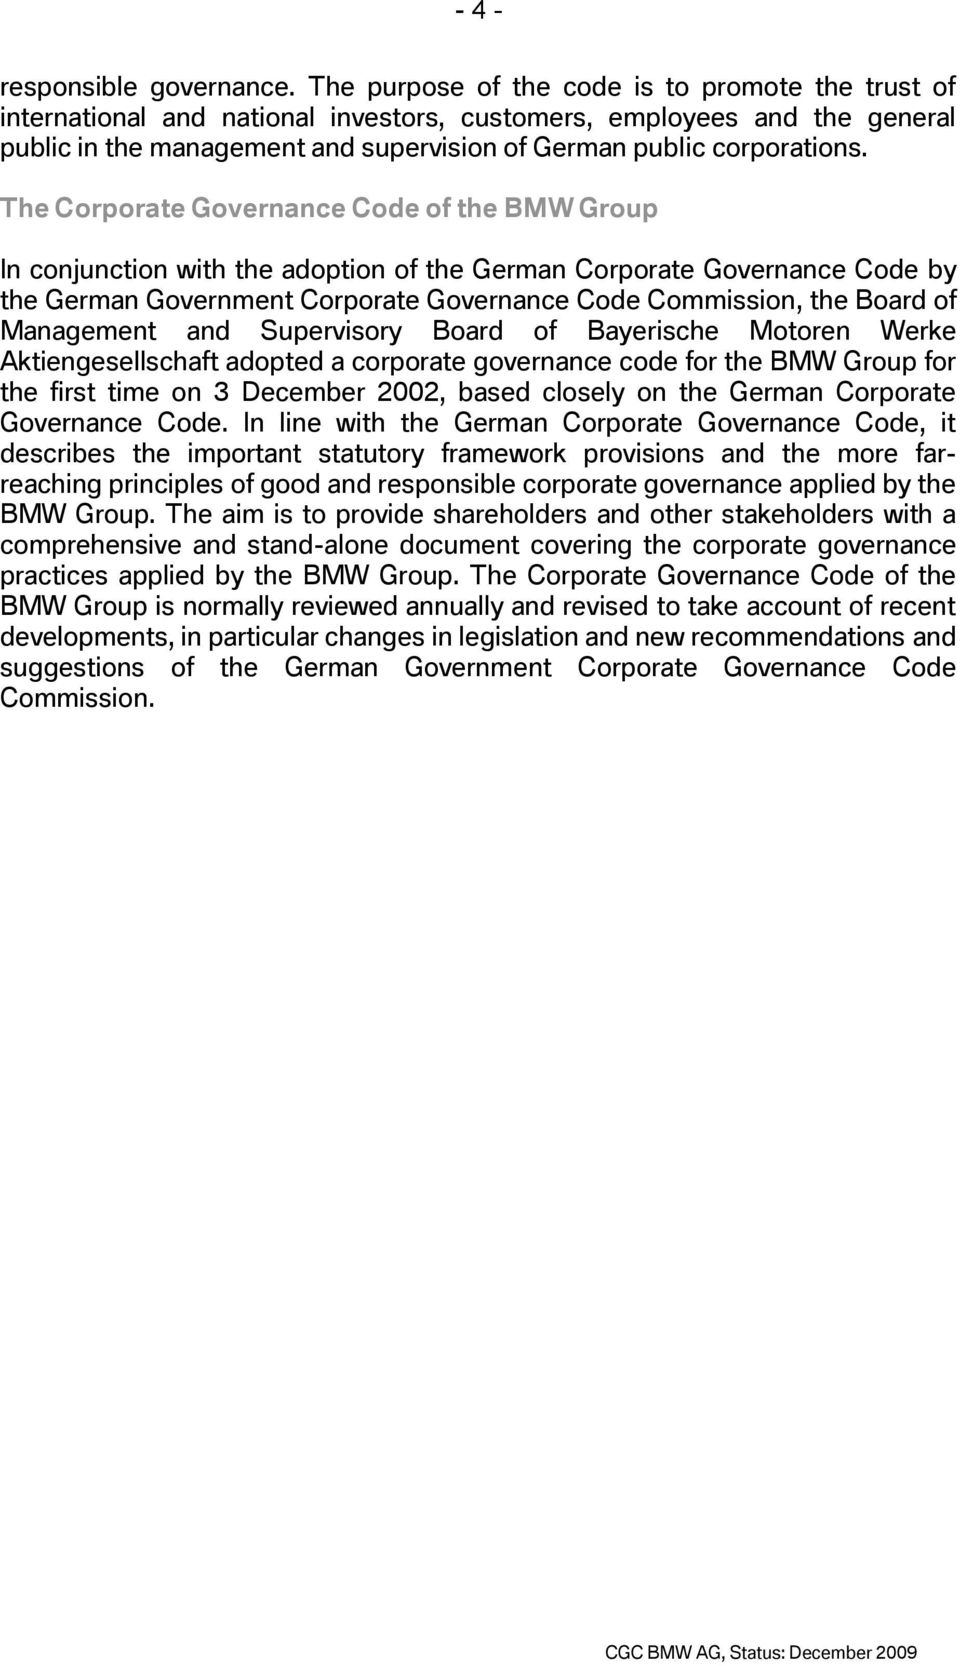 The Corporate Governance Code of the BMW Group In conjunction with the adoption of the German Corporate Governance Code by the German Government Corporate Governance Code Commission, the Board of